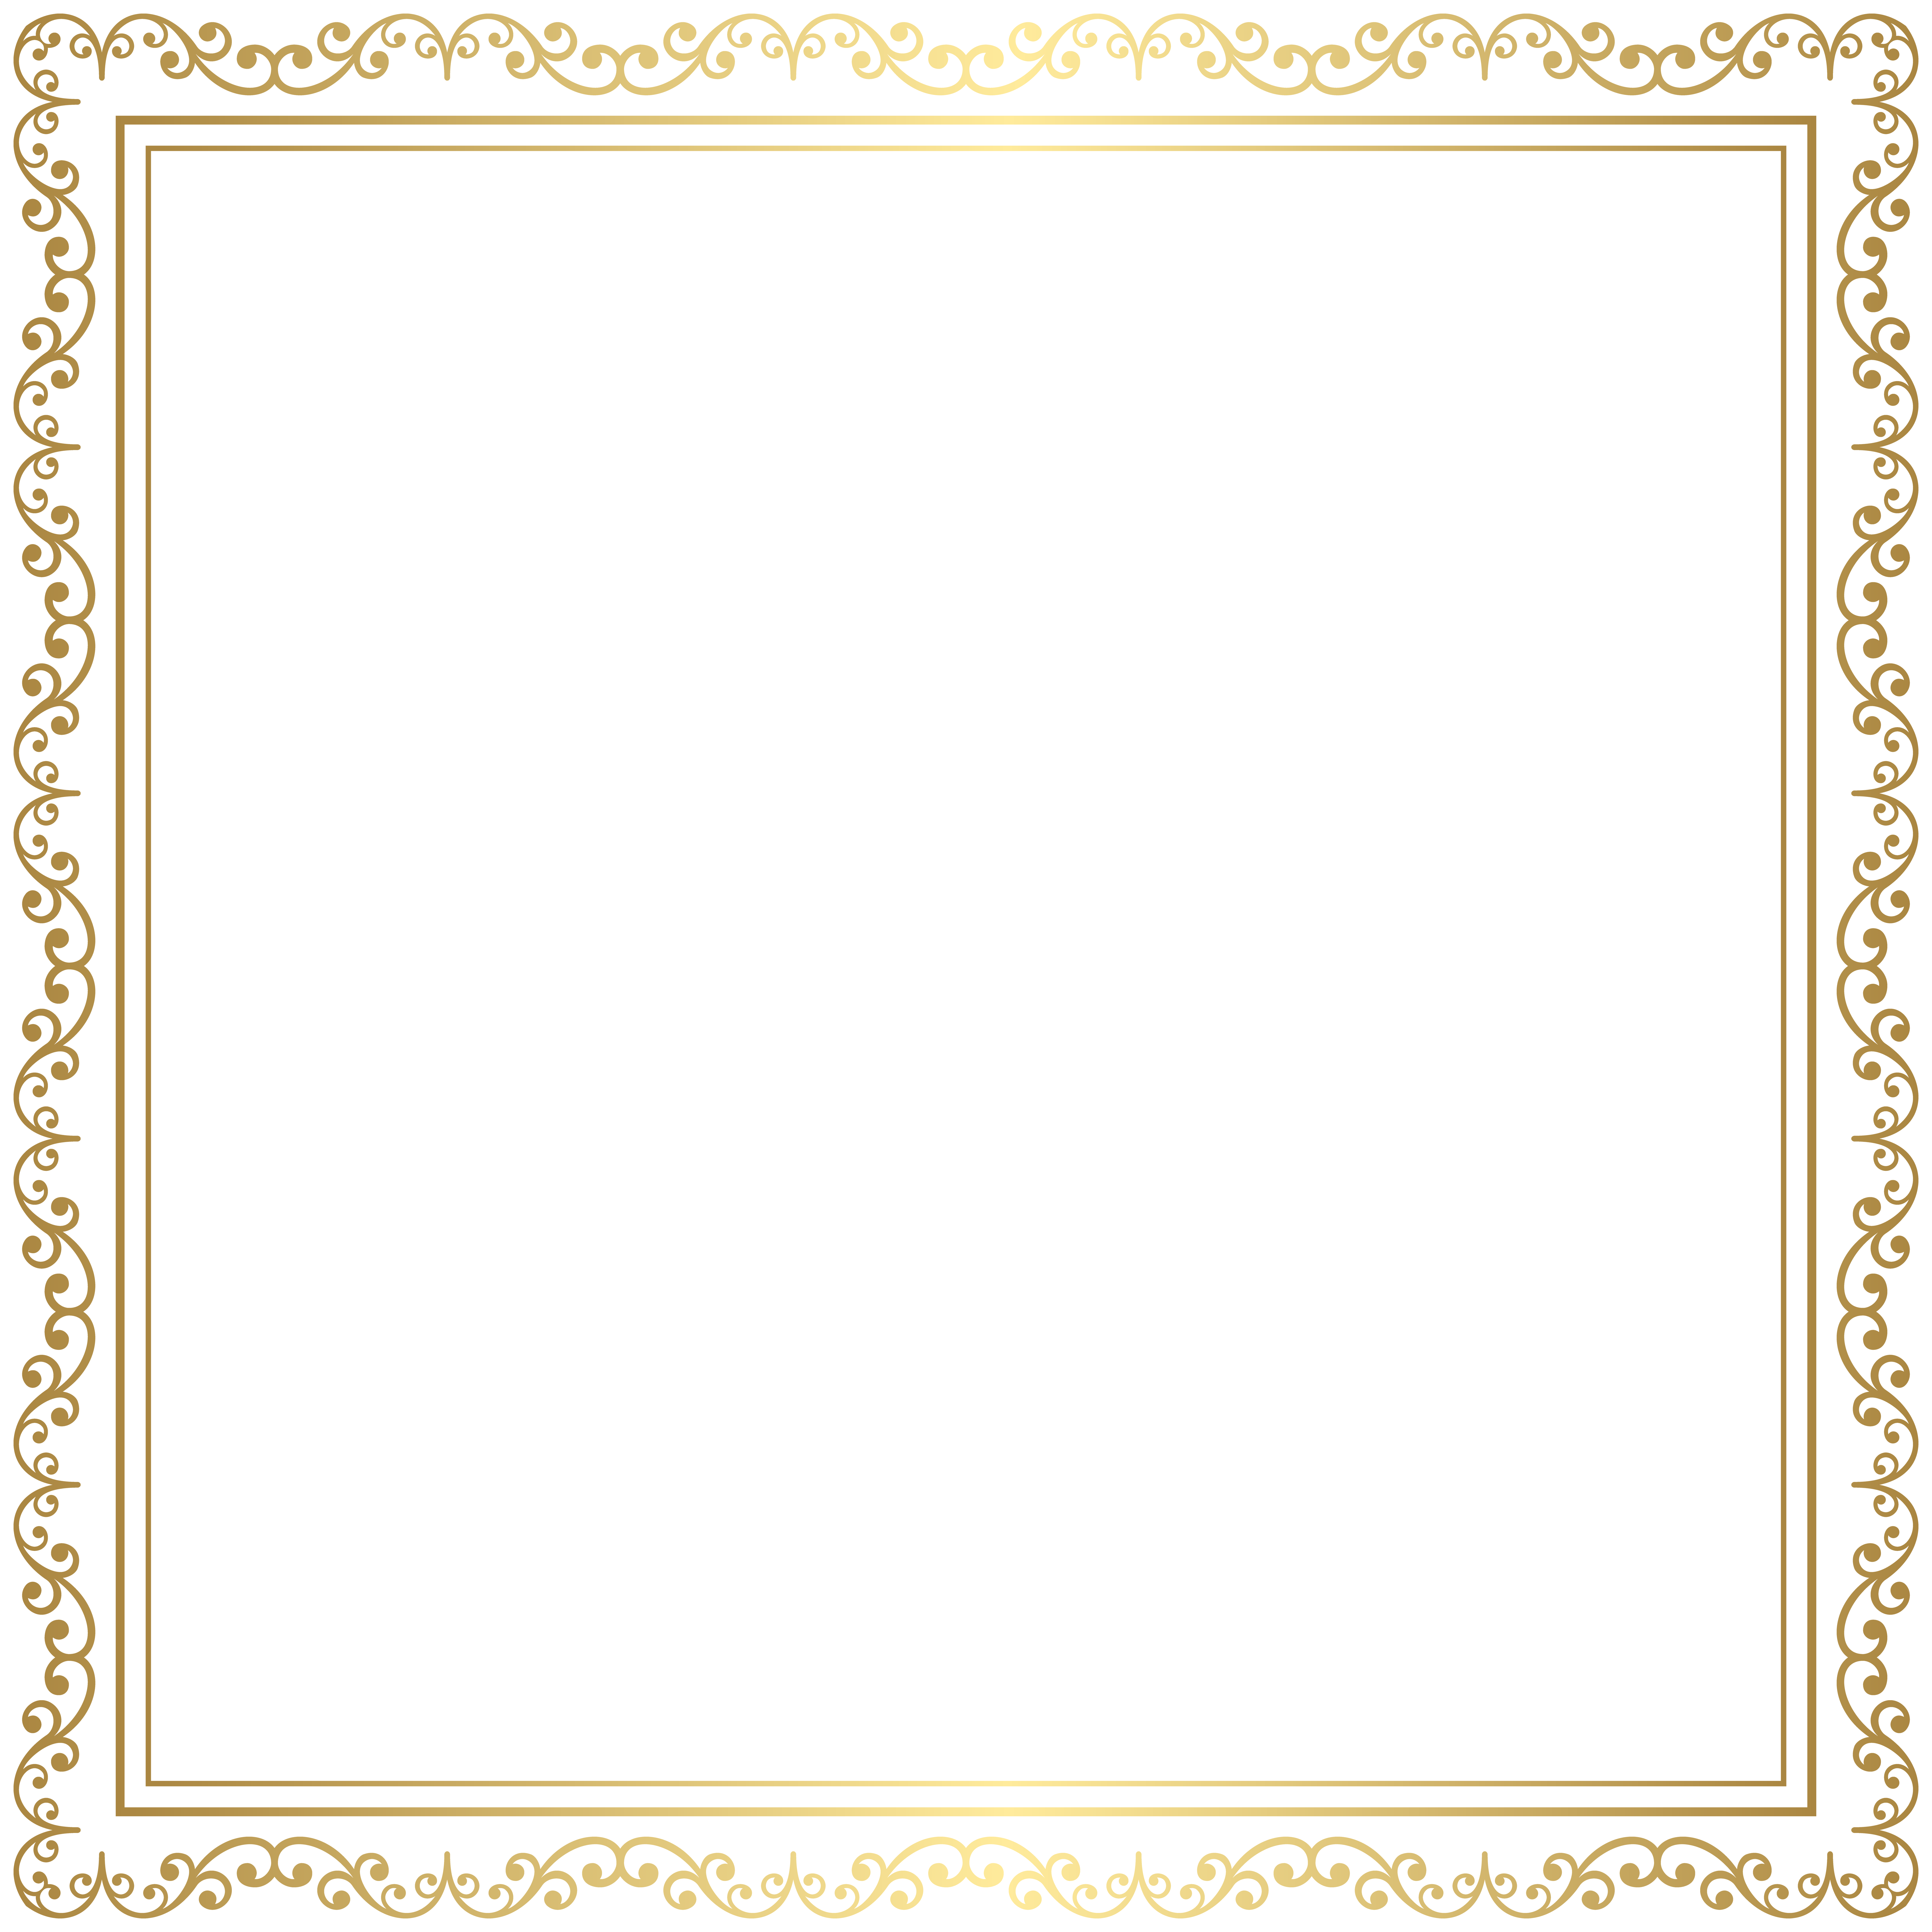 Picture frame clipart transparent royalty free Border Frame Gold Transparent PNG Clip Art Image | Gallery ... royalty free